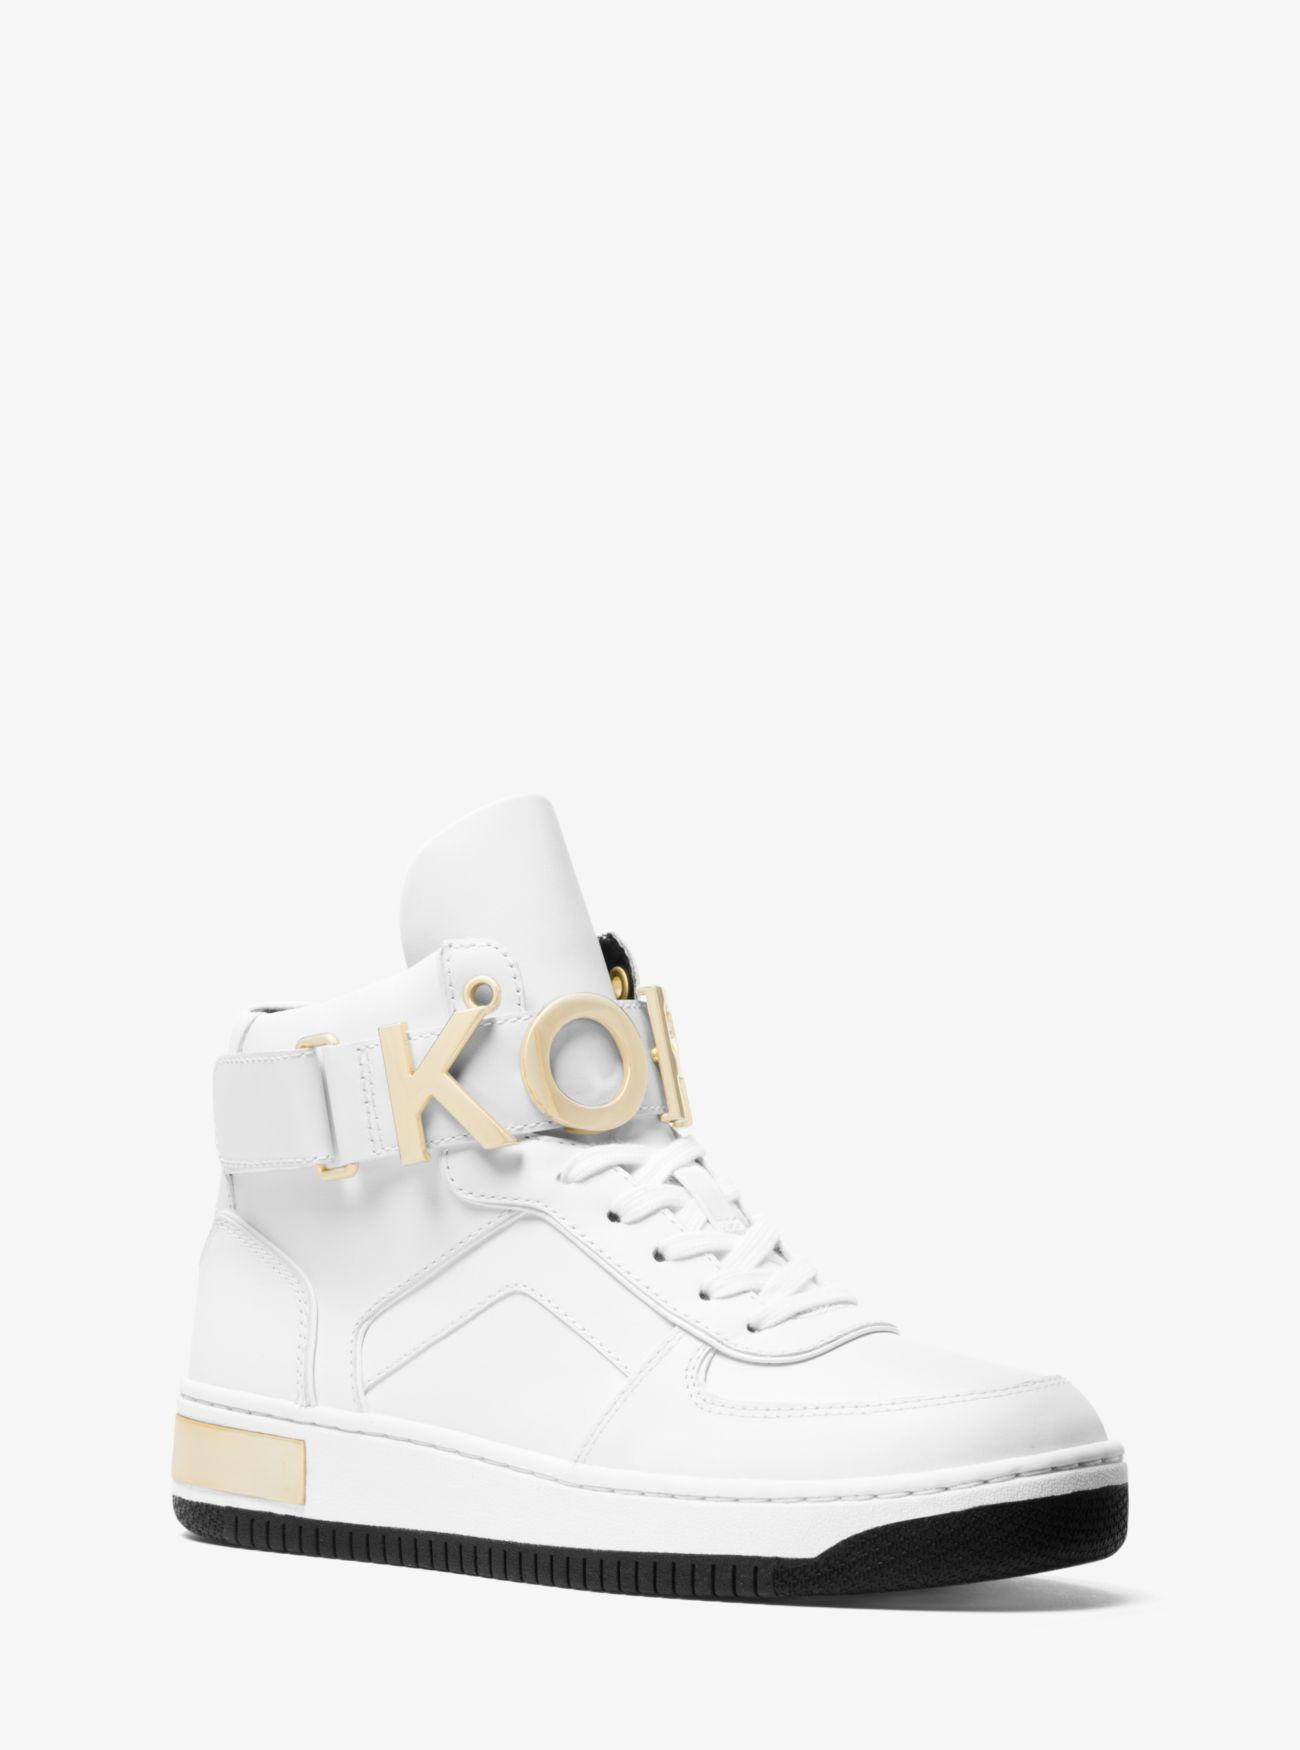 848e34d2cca Michael Kors Cortlandt Embellished Leather High-top Sneaker in White ...